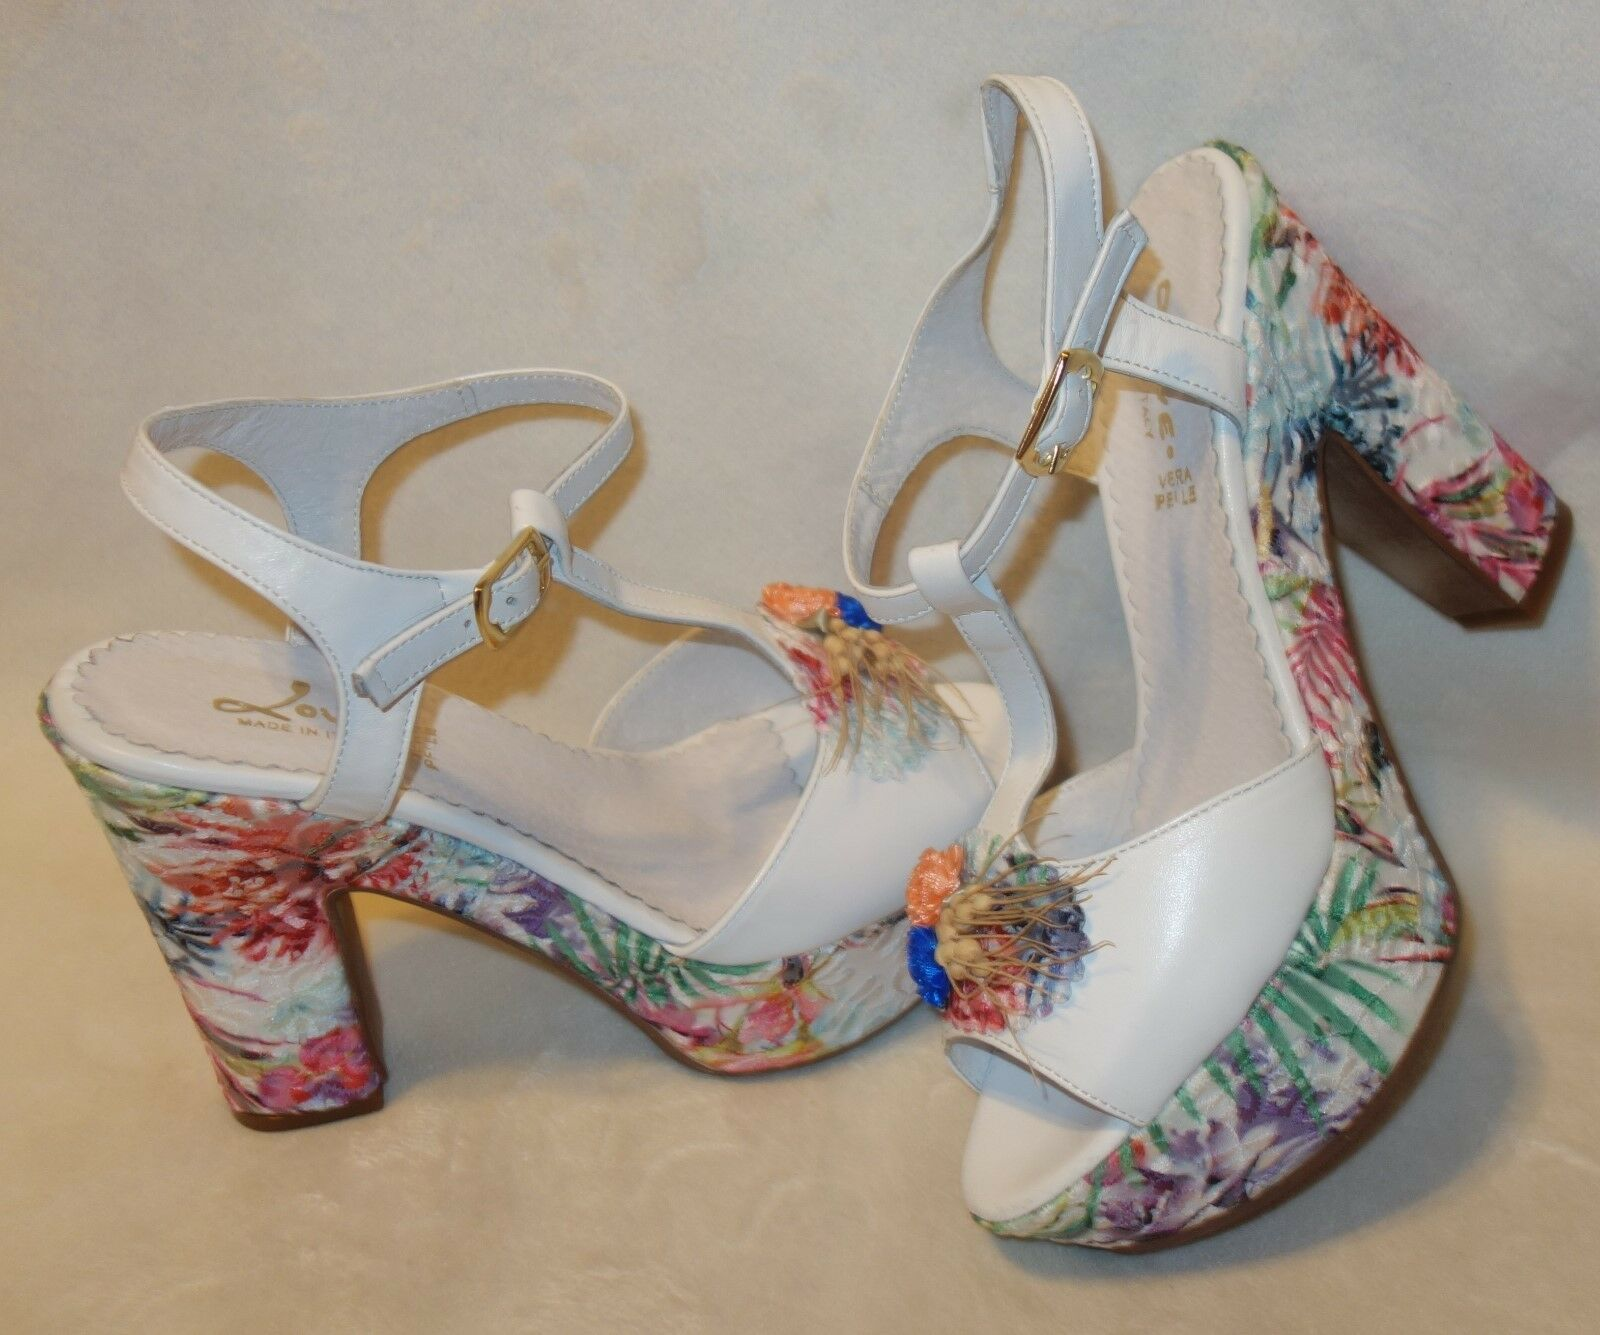 Love made in italy floral Sandales Sandales floral sz 39 new 1fd798